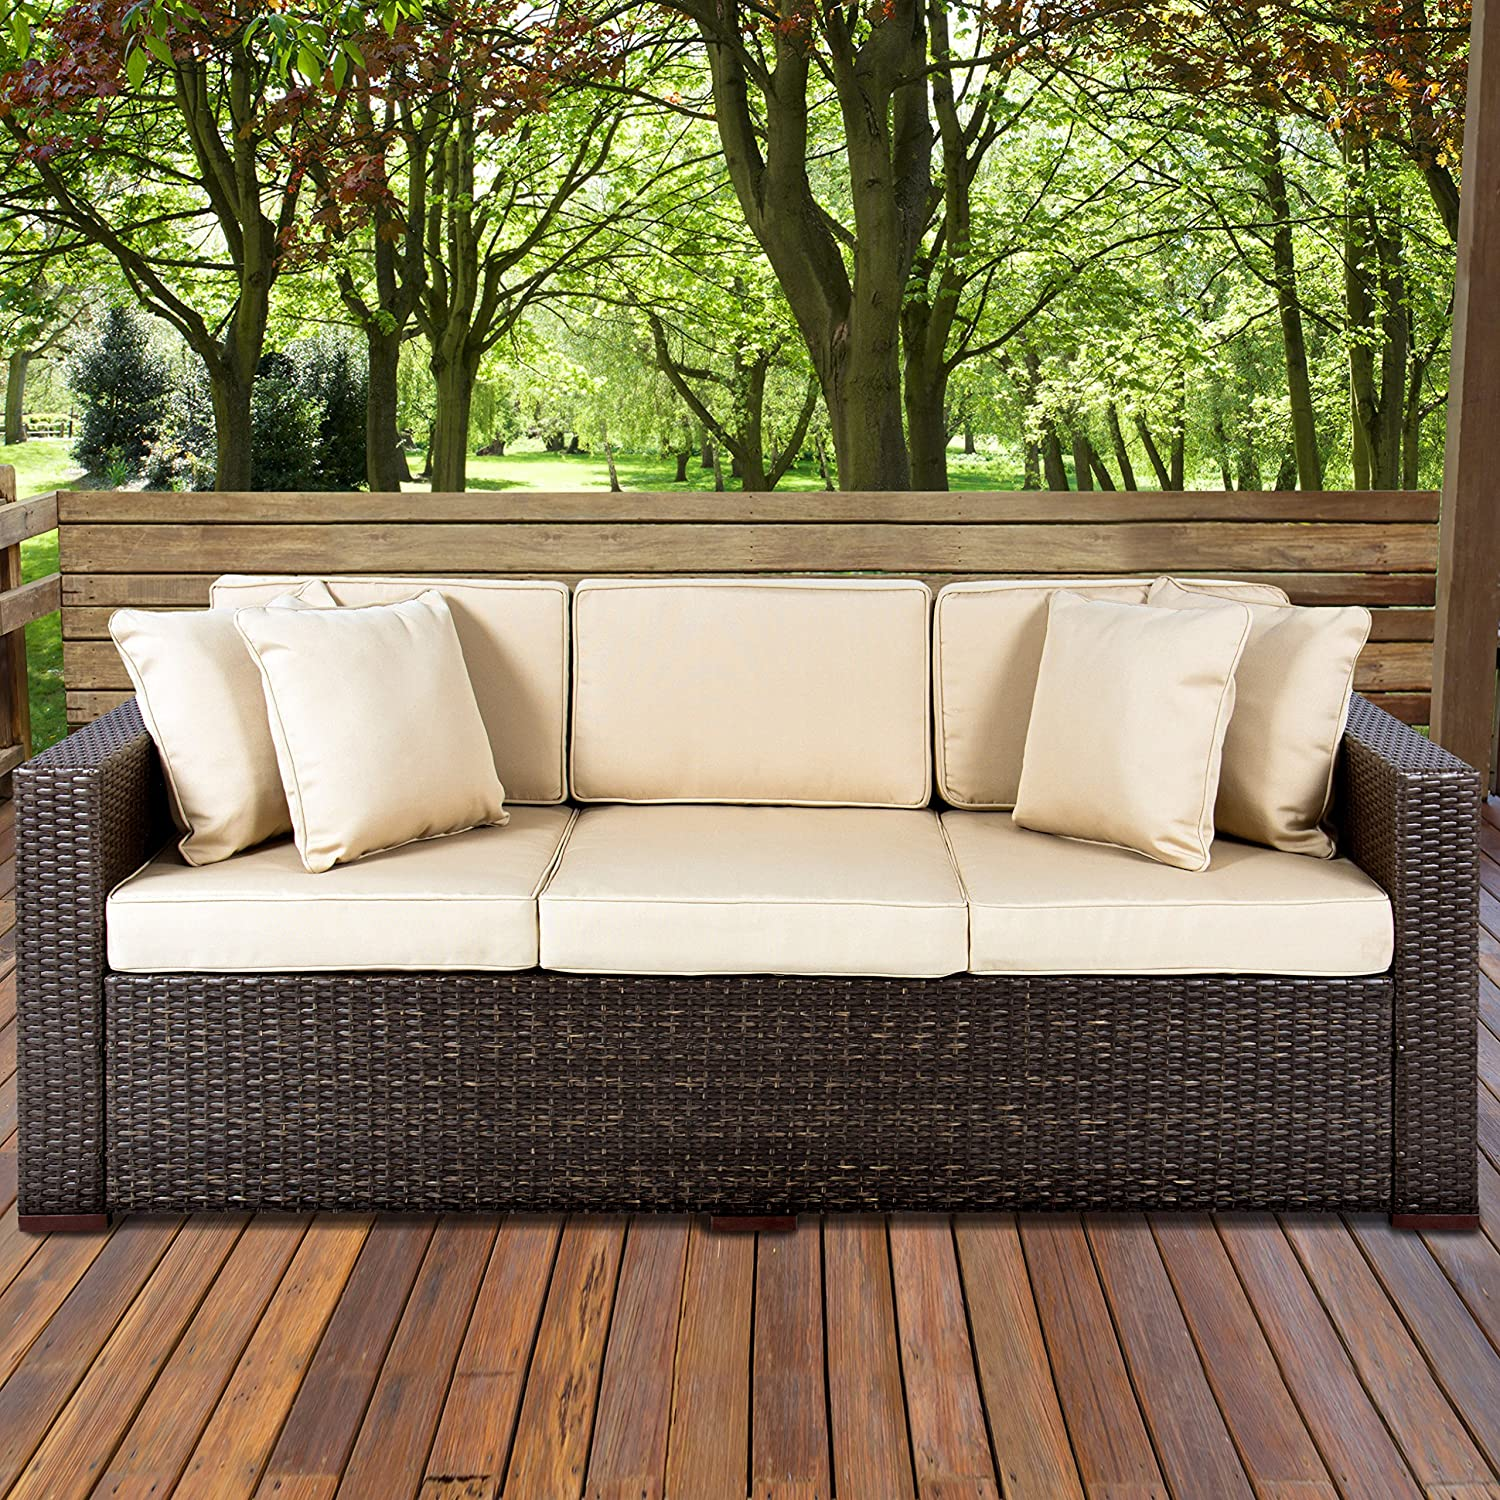 Amazon com best choice products 3 seat outdoor wicker sofa couch patio furniture w steel frame and removable cushions brown garden outdoor